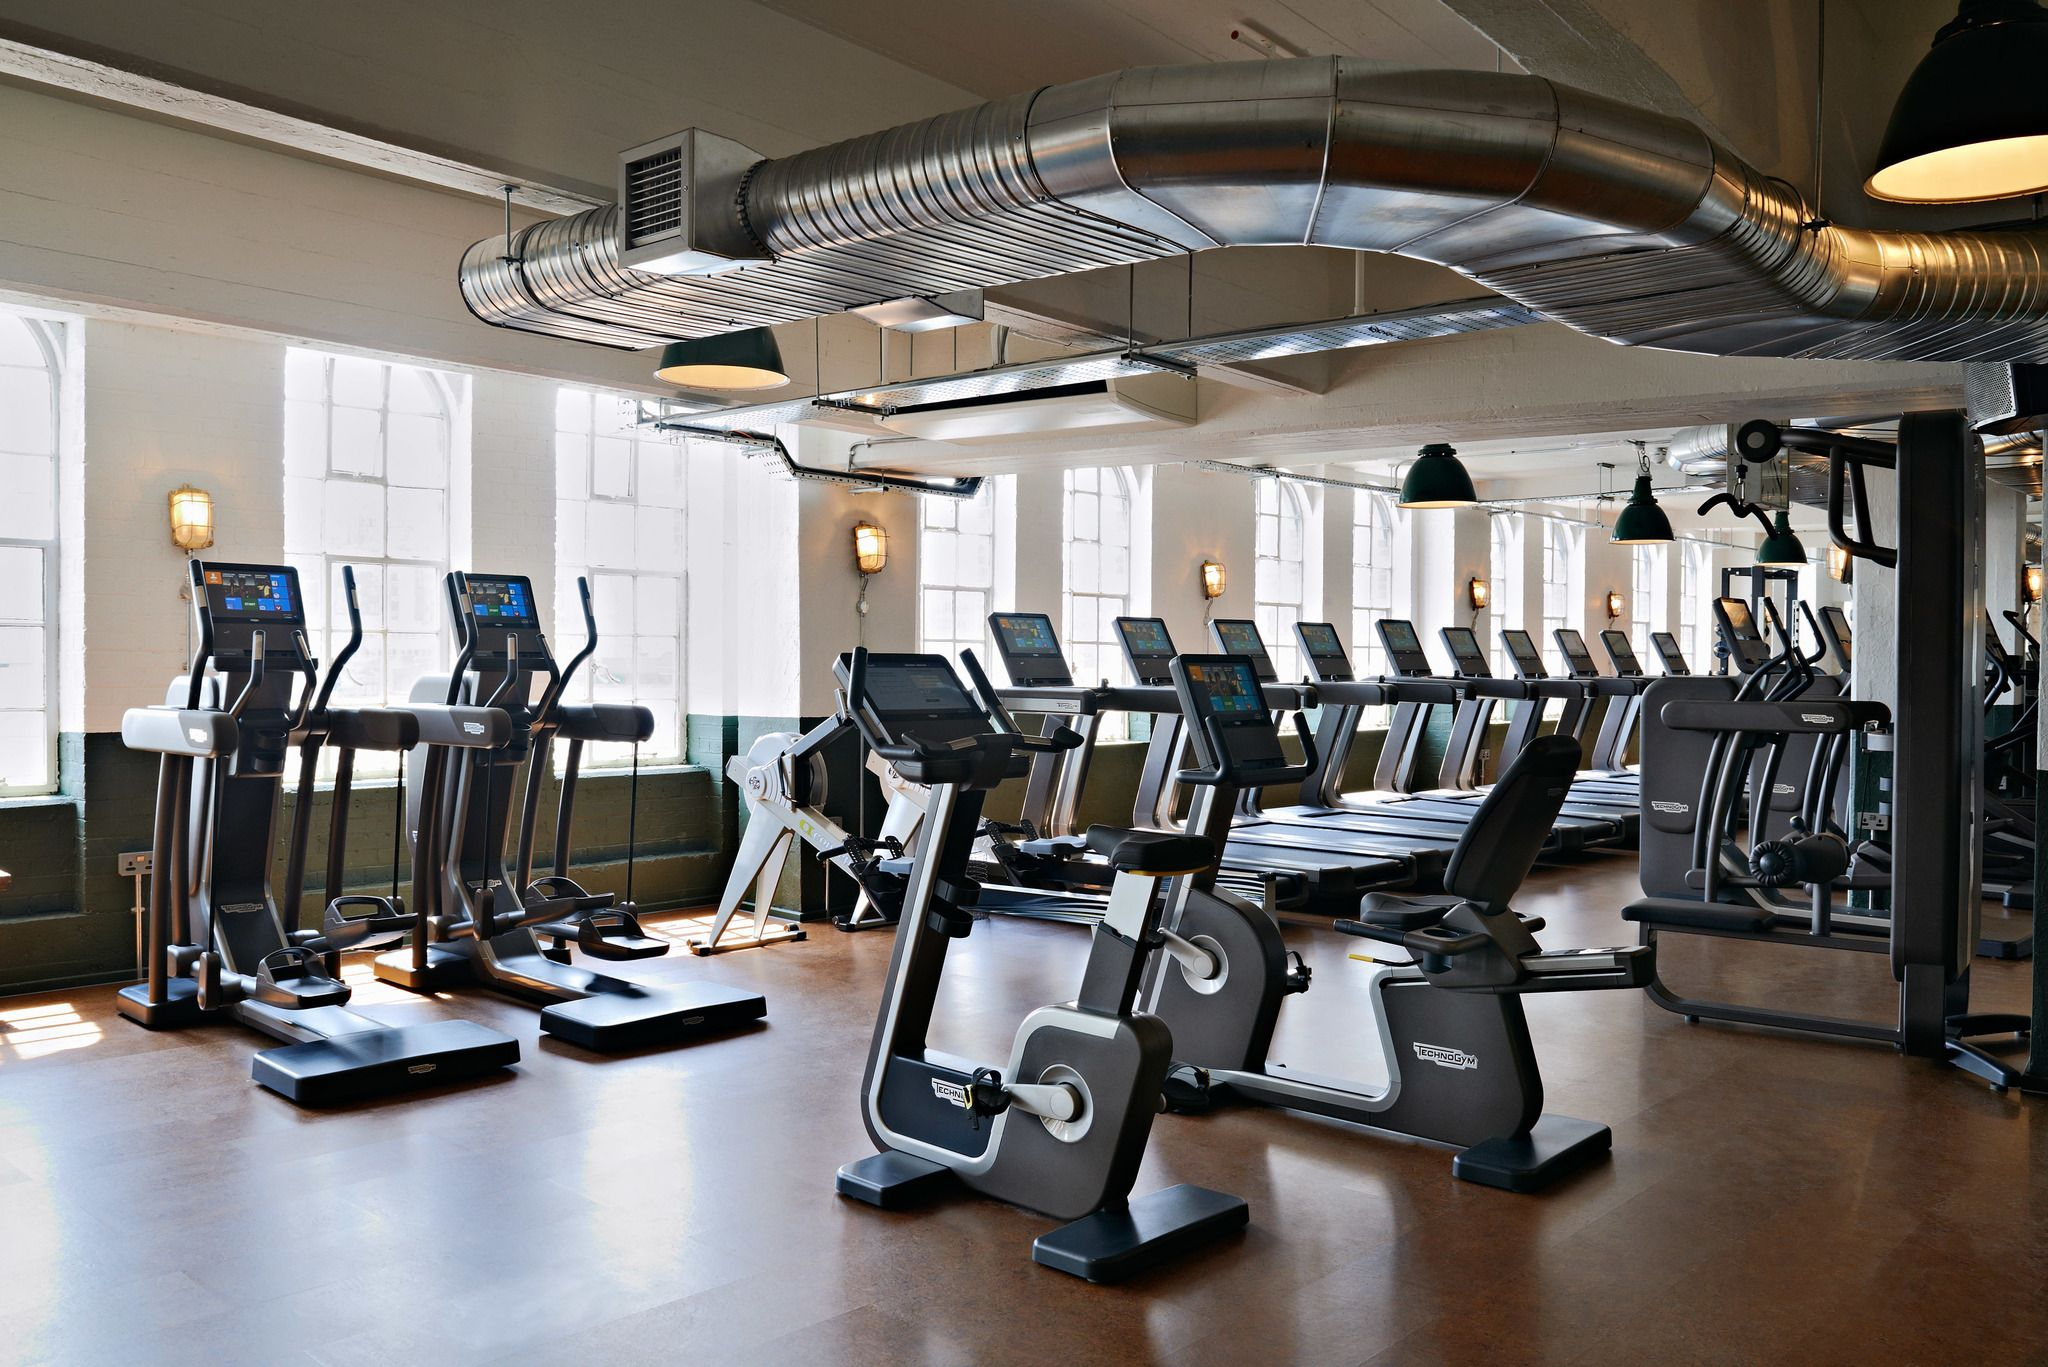 Images about gym s design on pinterest home gyms a gym and search - Our Top Of The Line Range Of Equipment At The Equally Stunning House A Private Member S Club In The Heart Of London Find This Pin And More On Gym Design